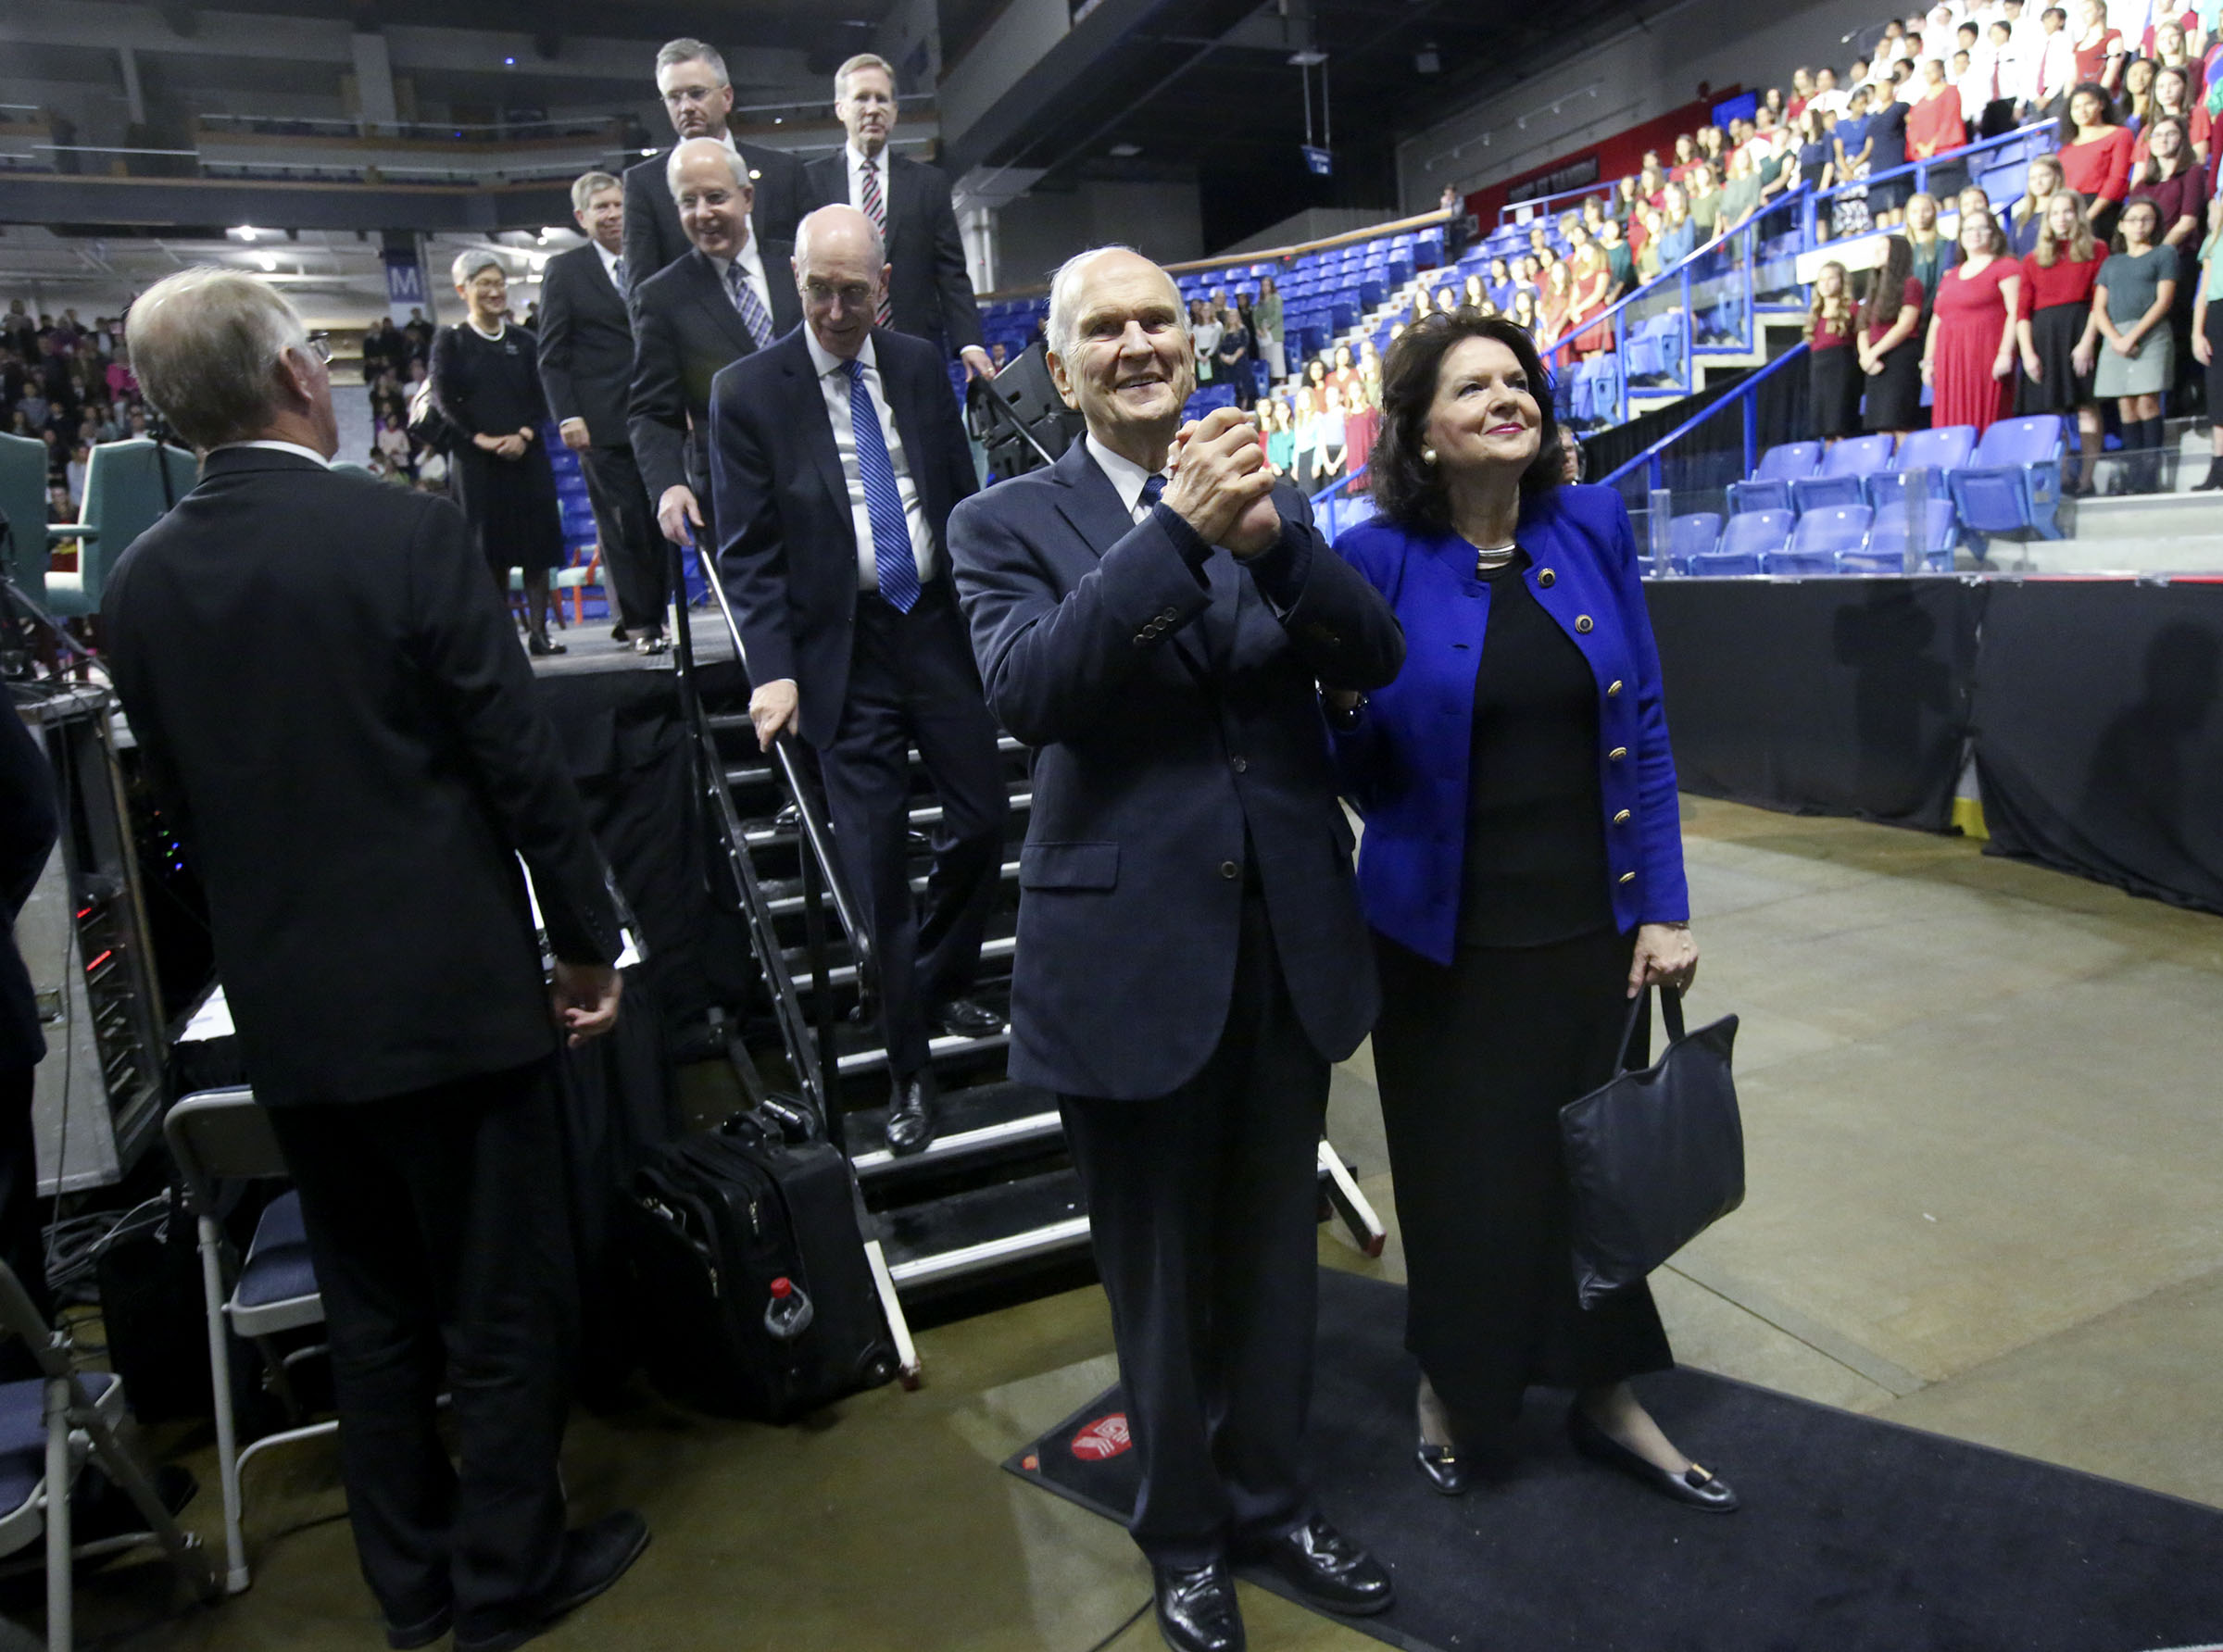 President Russell M. Nelson of The Church of Jesus Christ of Latter-day Saints and his wife, Sister Wendy Nelson, leave the Langley Events Center after speaking in Langley, British Columbia, on Sunday, Sept. 16, 2018.